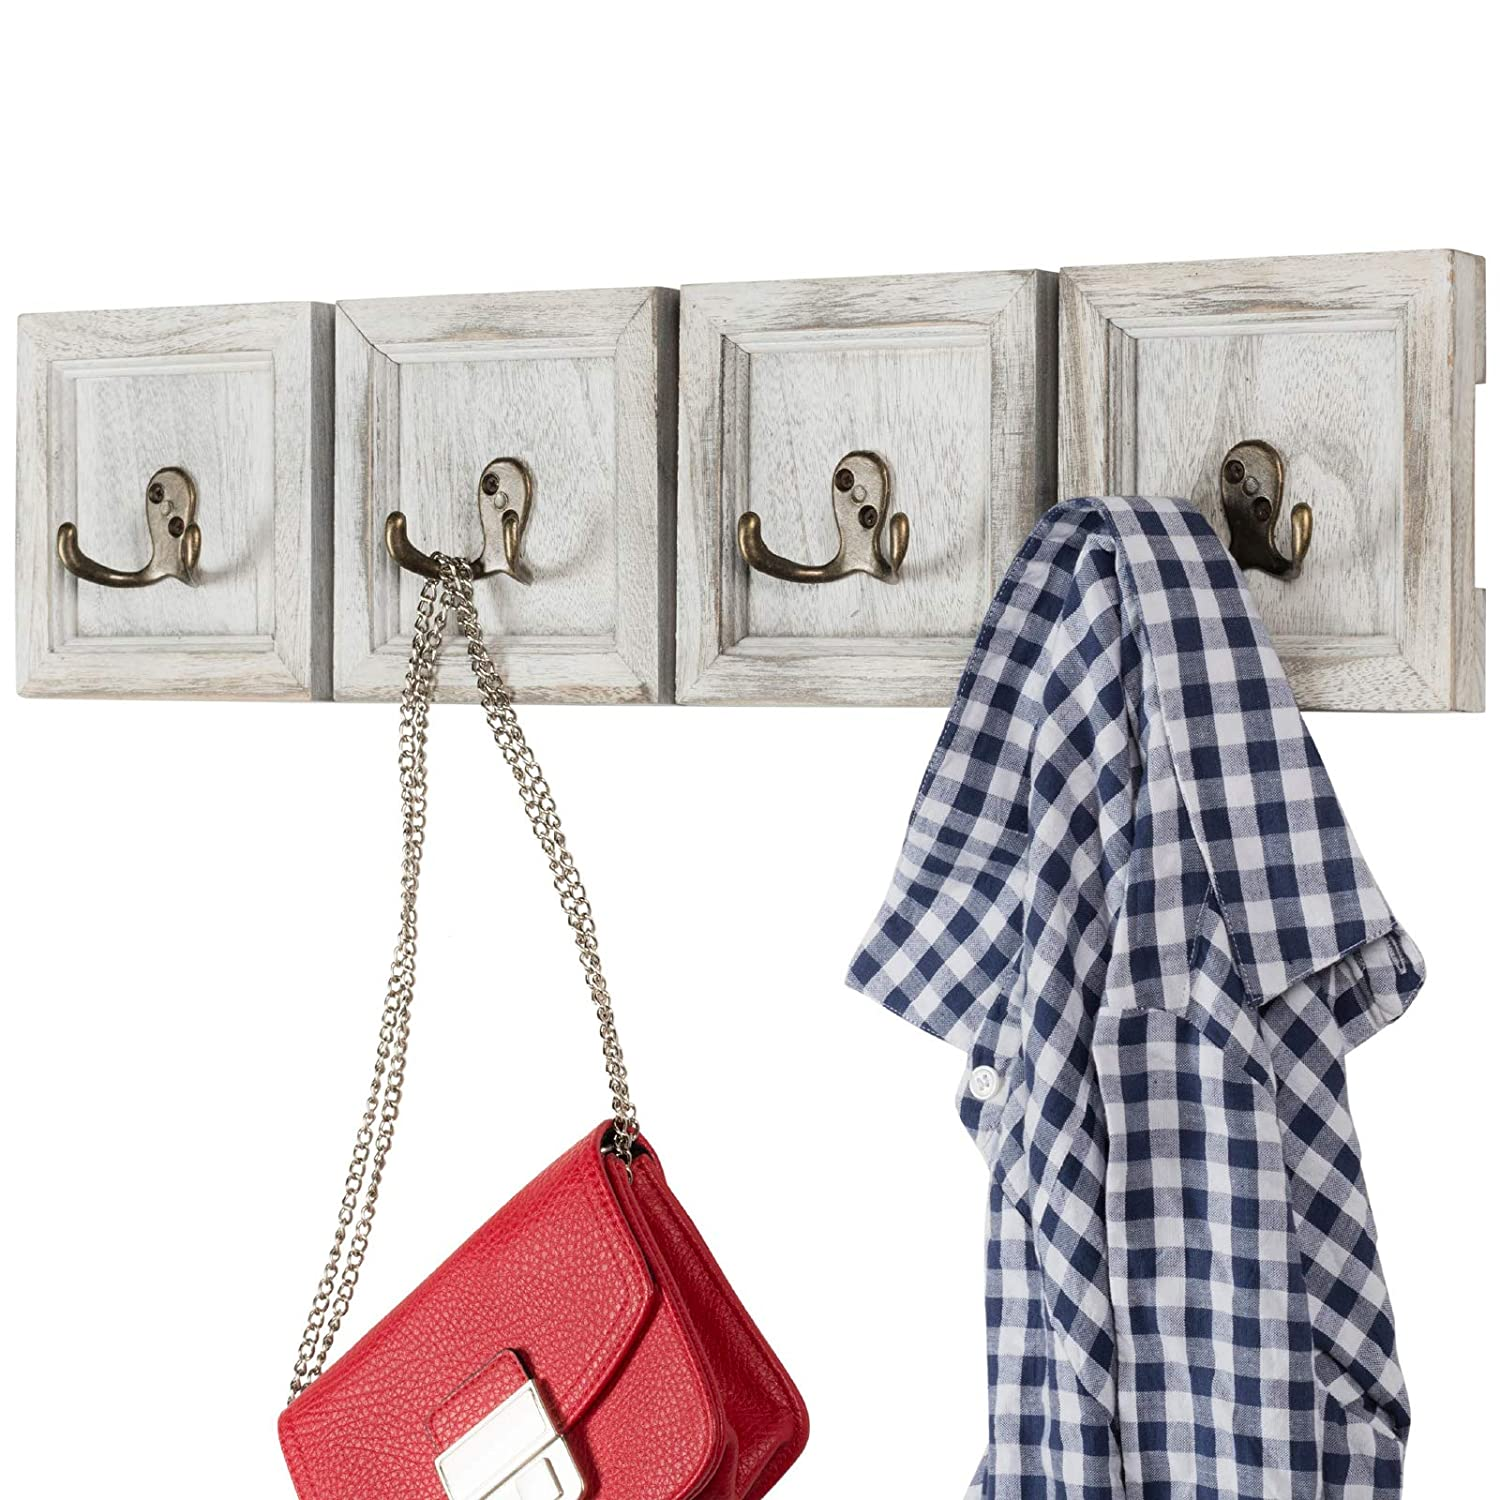 """Rustic Wall Mounted Coat Rack with 4 double hanging hooks. Overall Size is 24""""x6"""". Use as coat rack, hat organizer, key holder. Perfect for Entryway, Mudroom, Kitchen, Bathroom, Hallway, Foyer"""